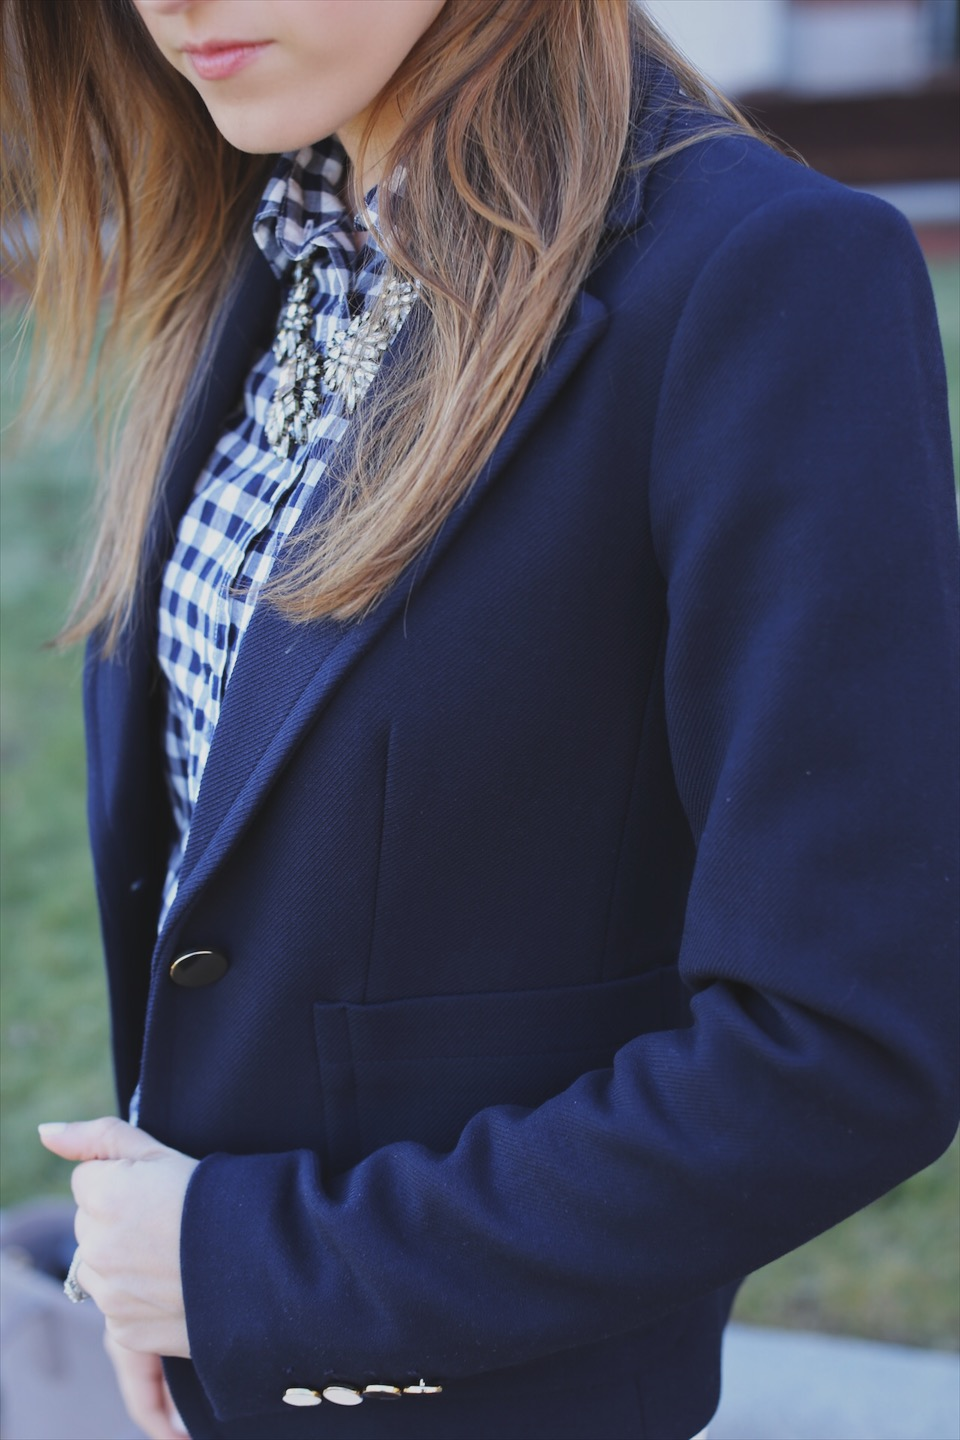 ann taylor navy blazer and gingham